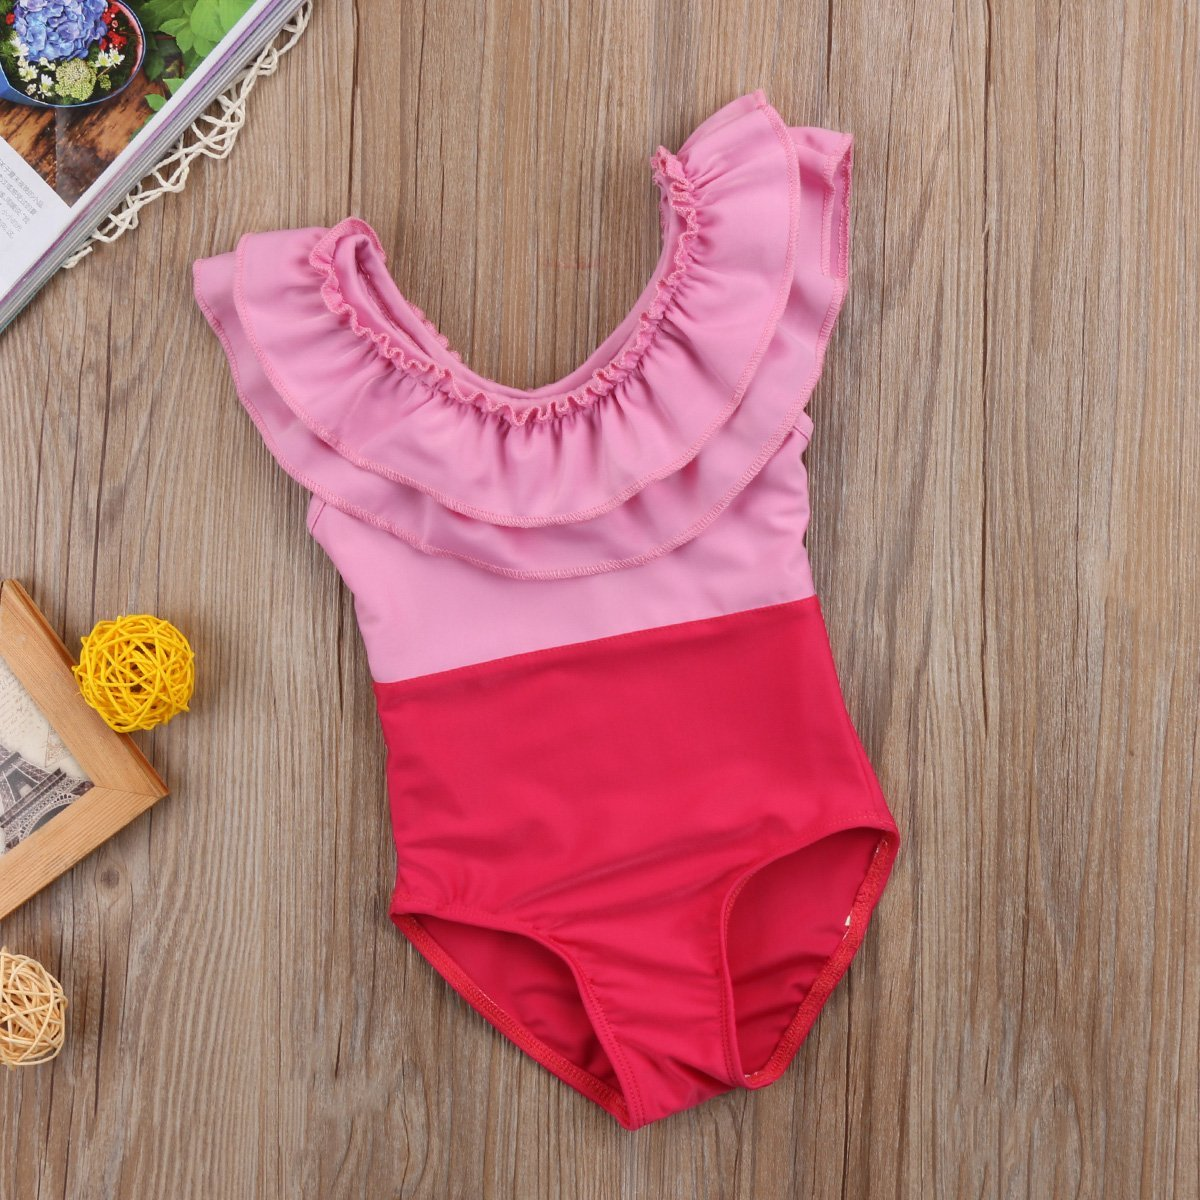 loomrack Mother/Daughter Matching Pretty in Pink Ruffle Swimsuits Family Matching Outfits S